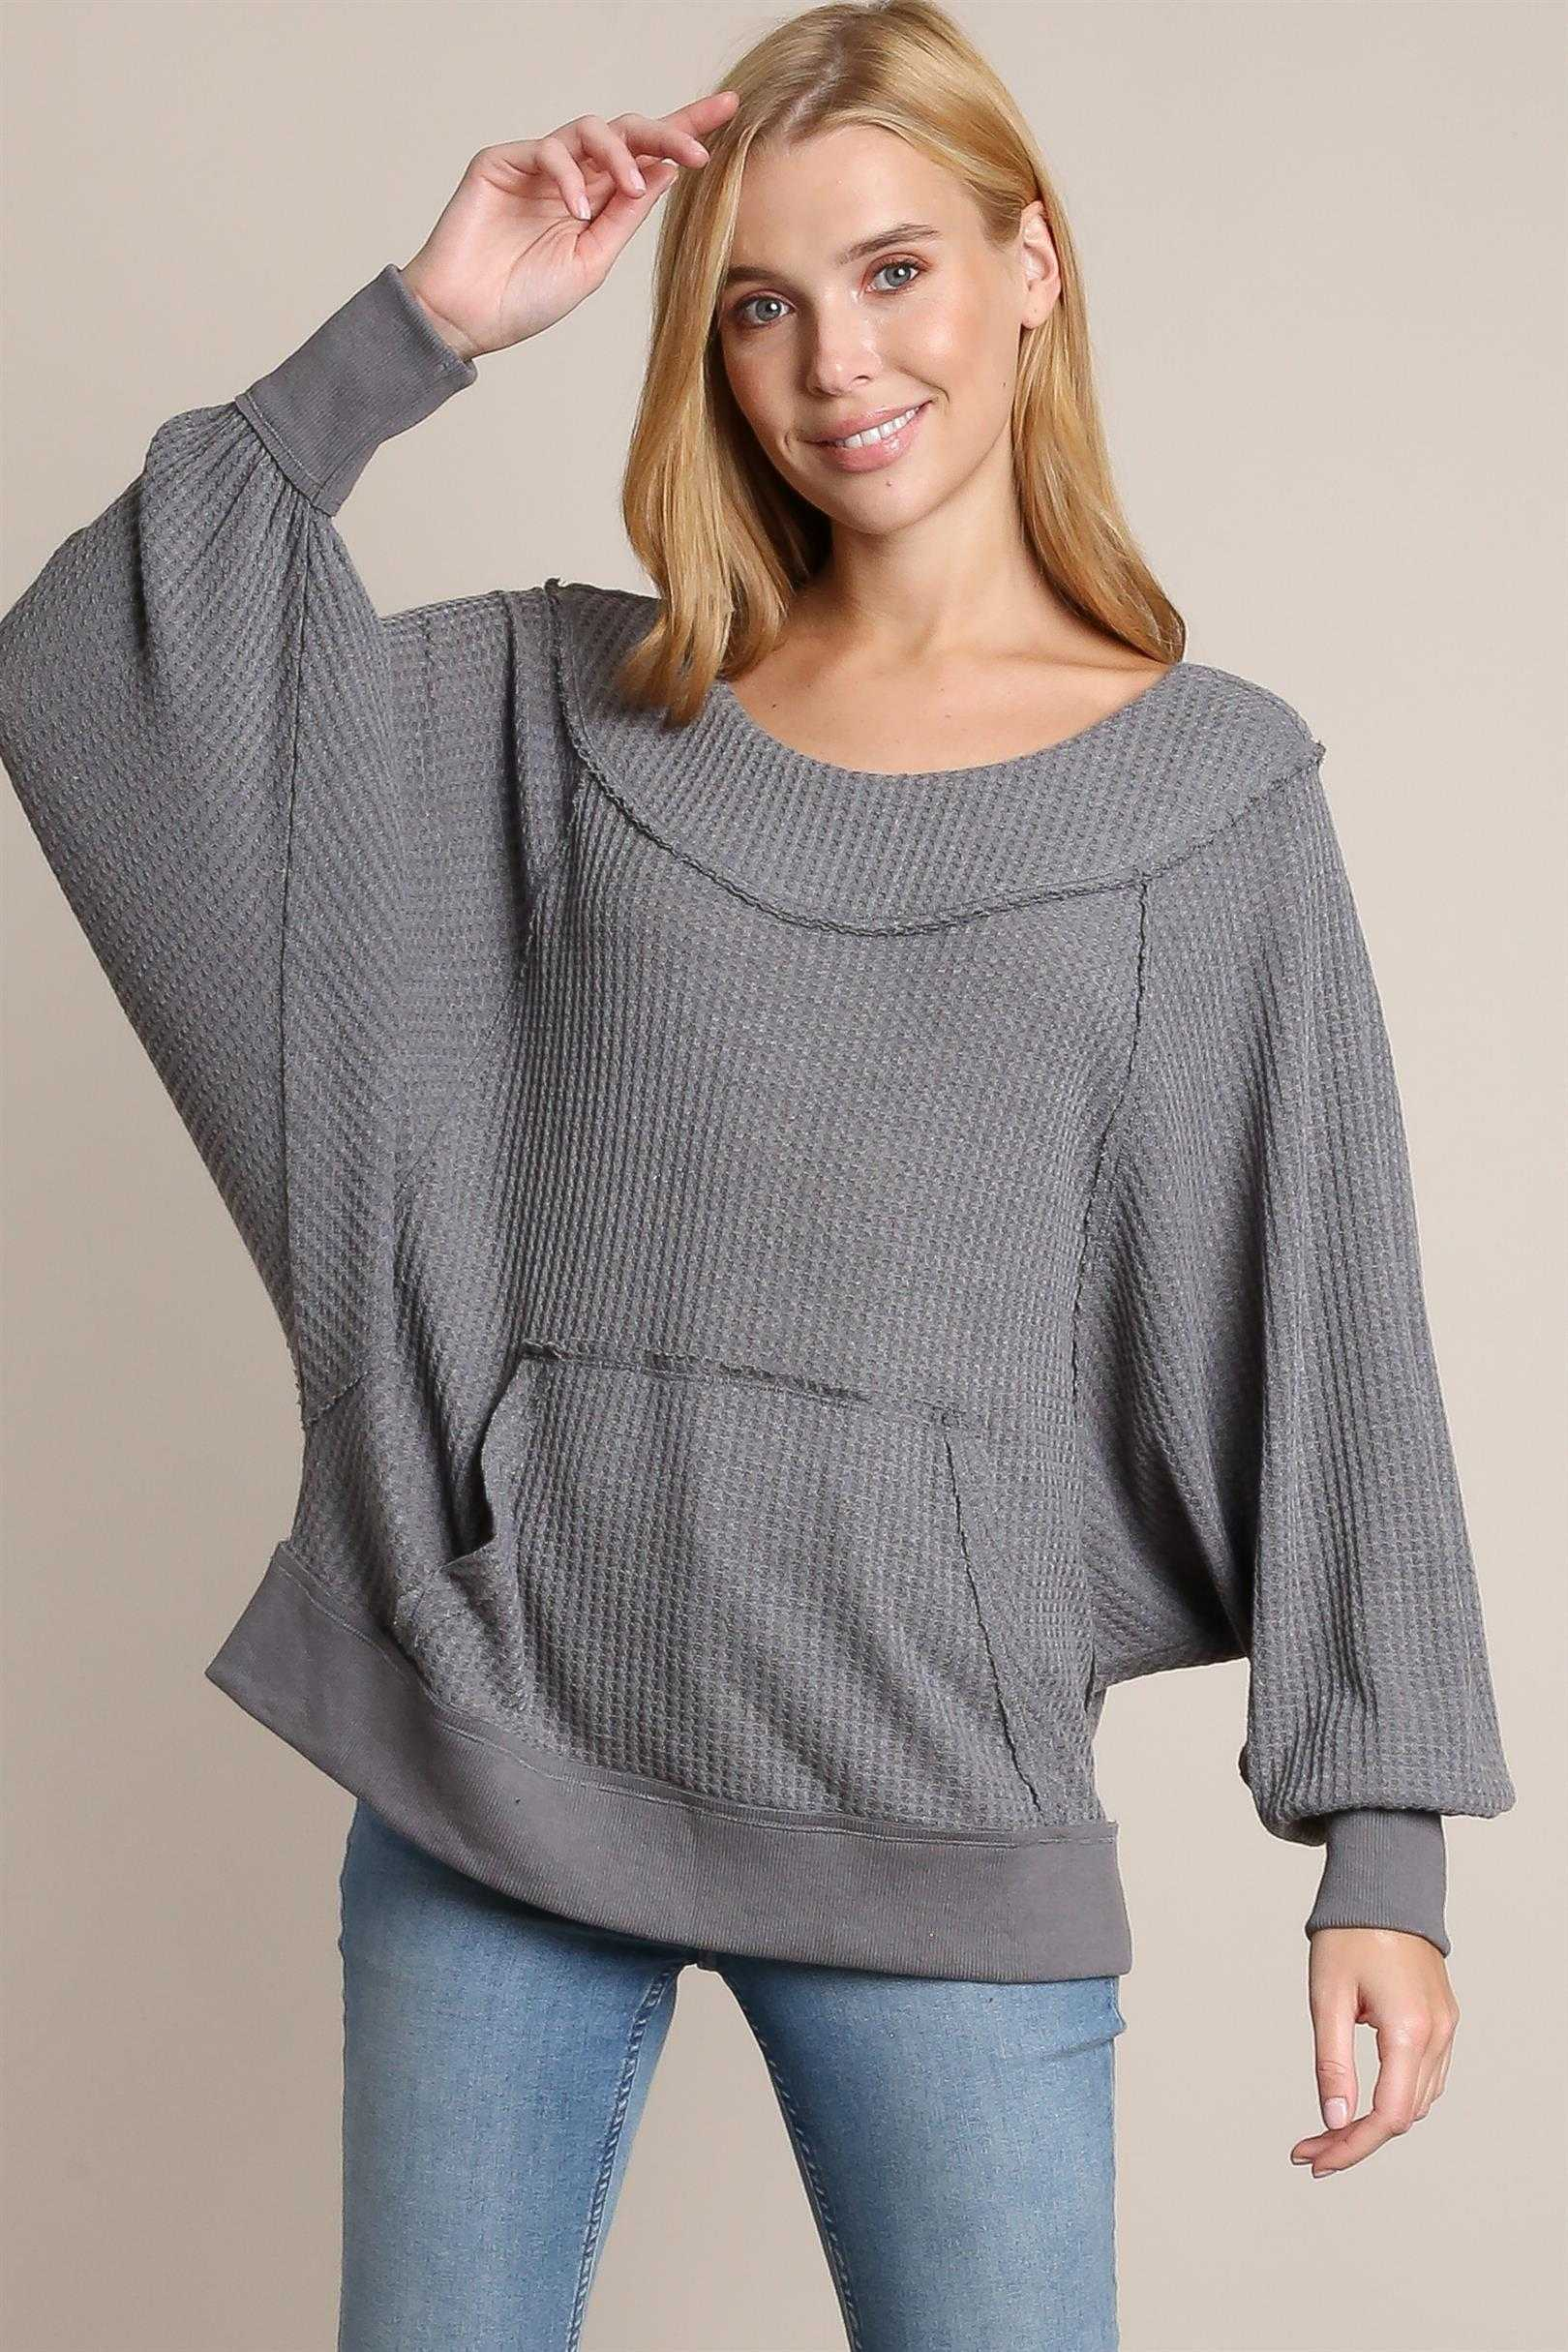 Waffle knit off shoulder top